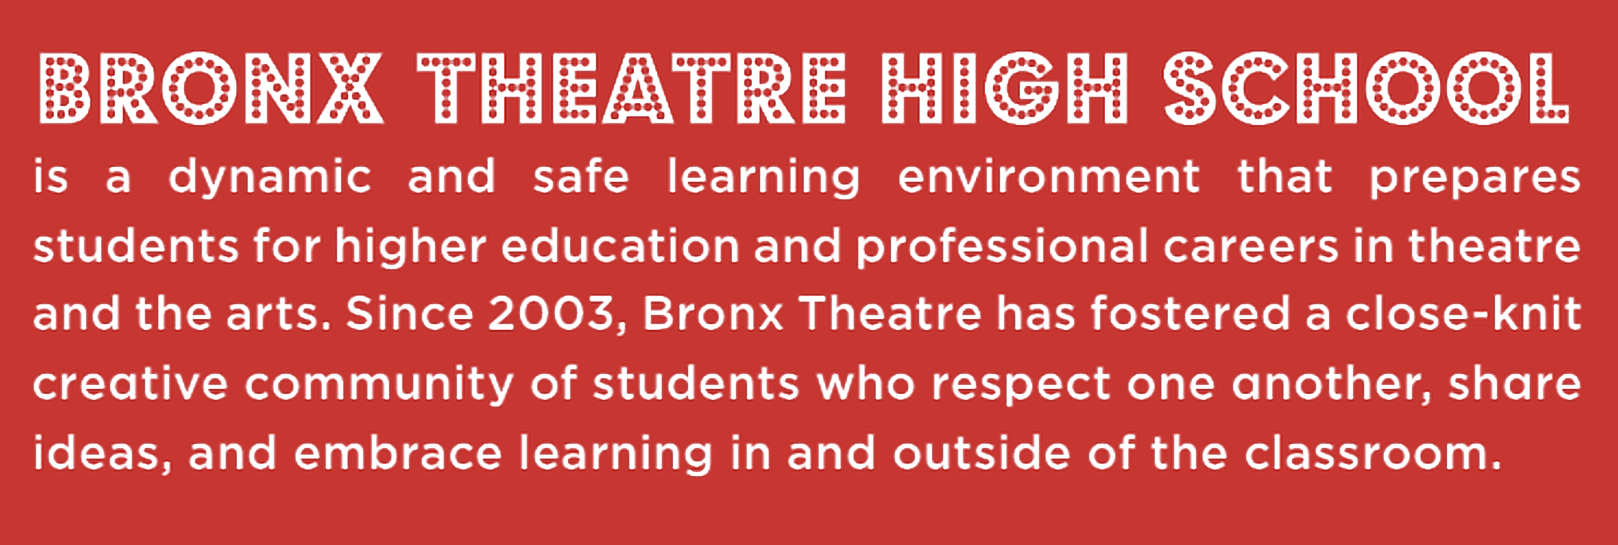 Bronx theatre high school is a dynamic and safe learning environment